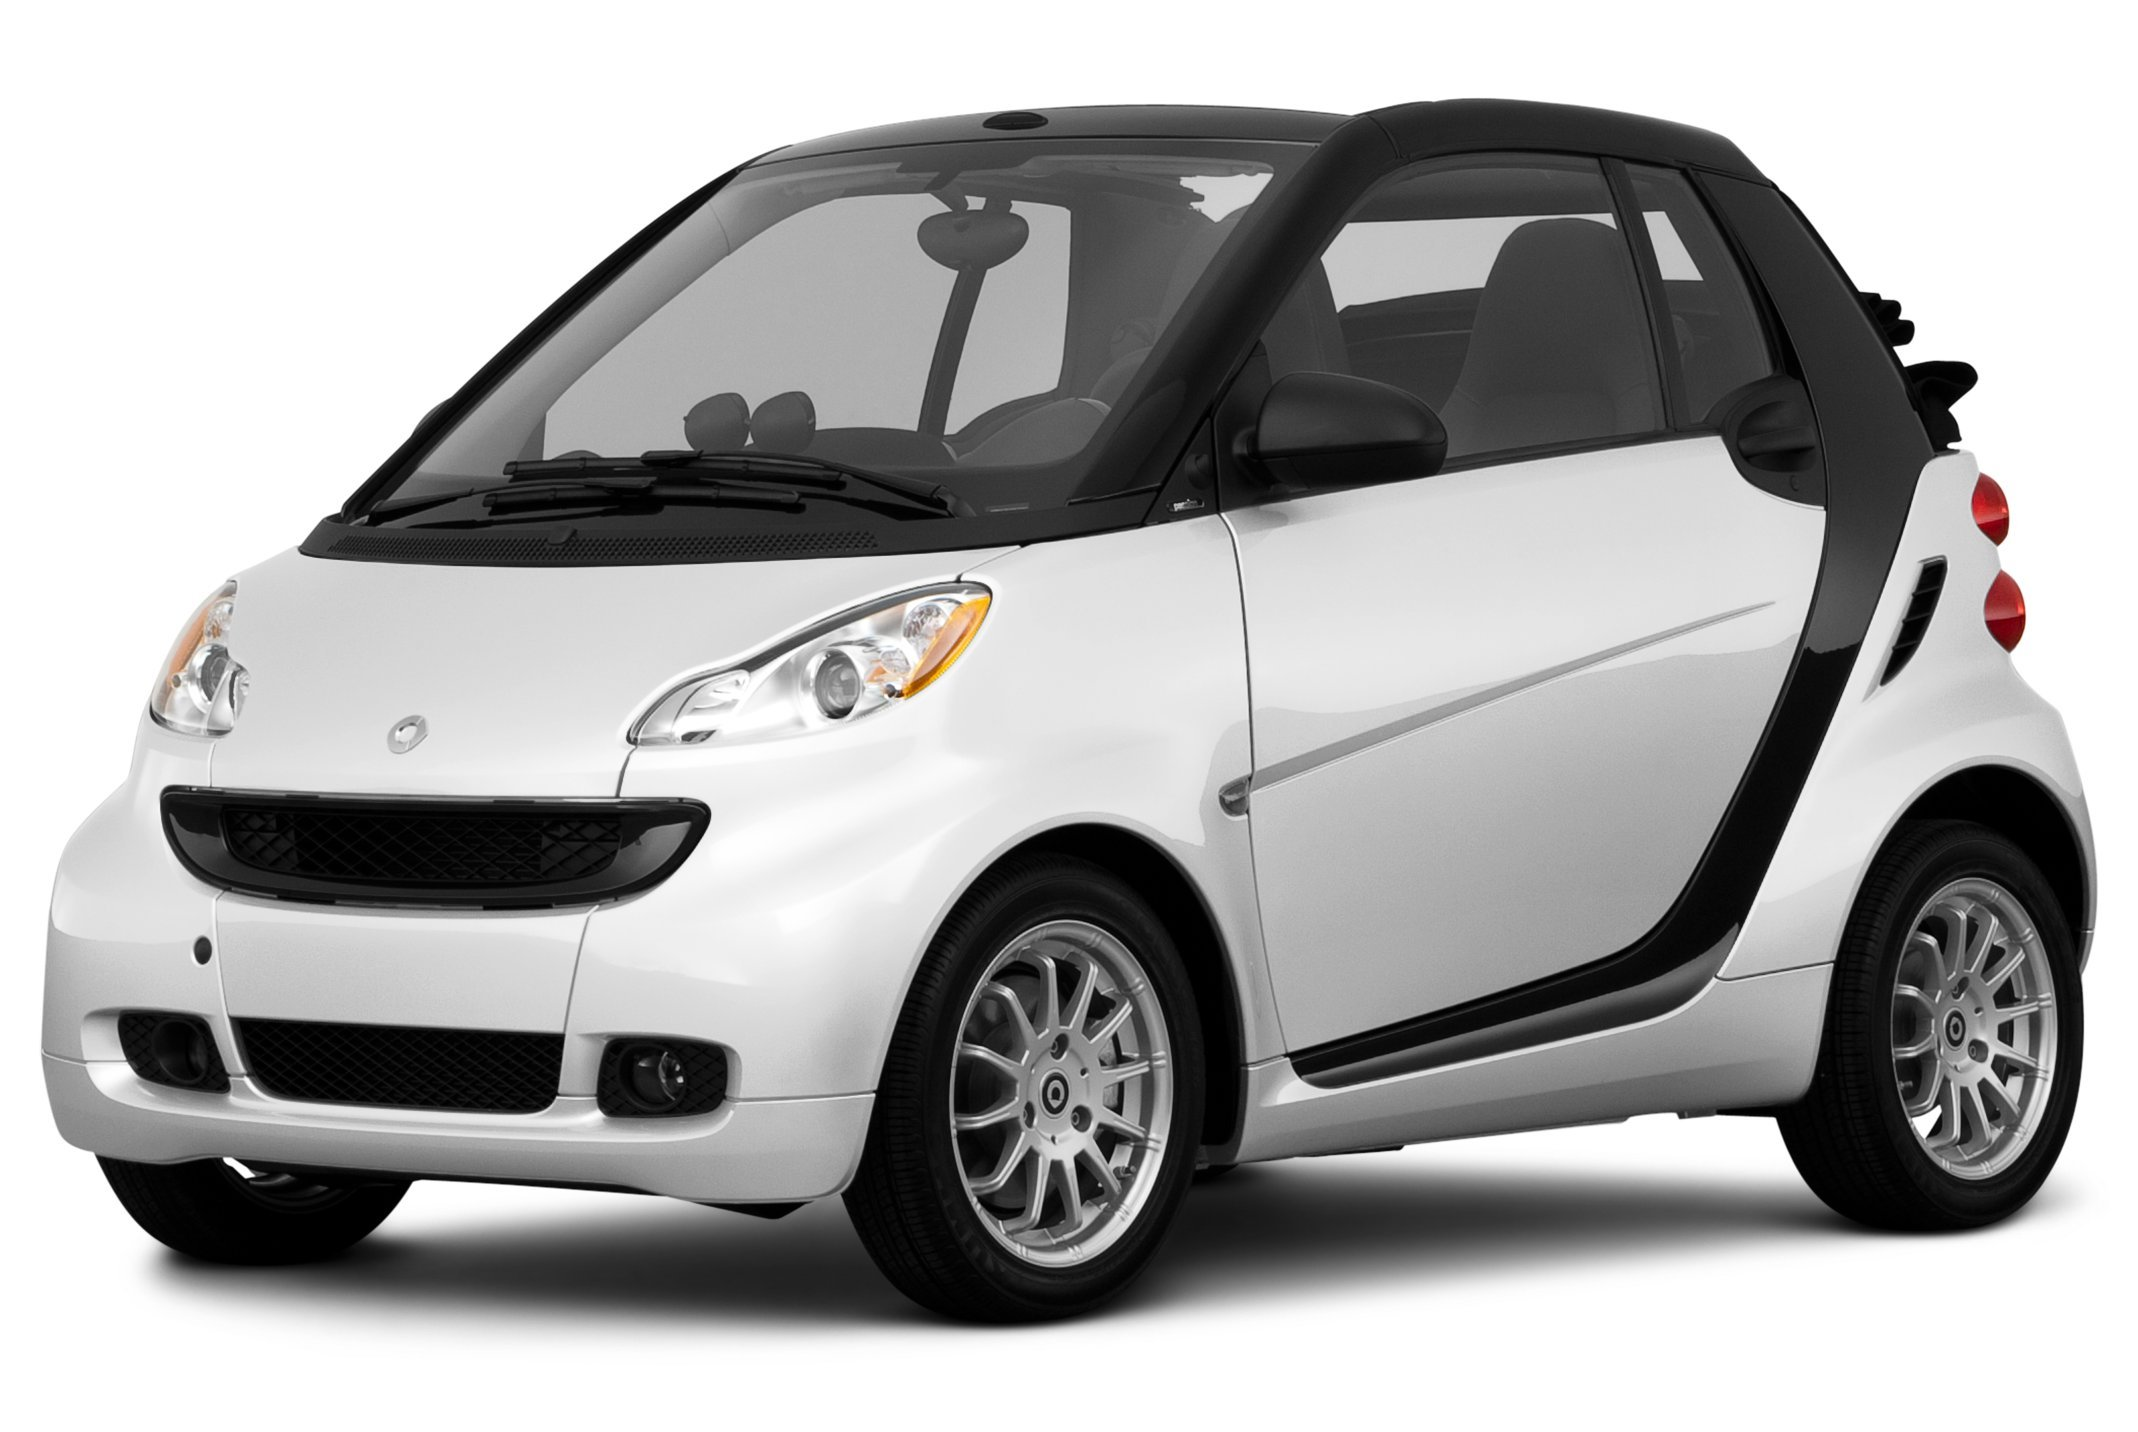 2011 smart fortwo reviews images and specs vehicles. Black Bedroom Furniture Sets. Home Design Ideas